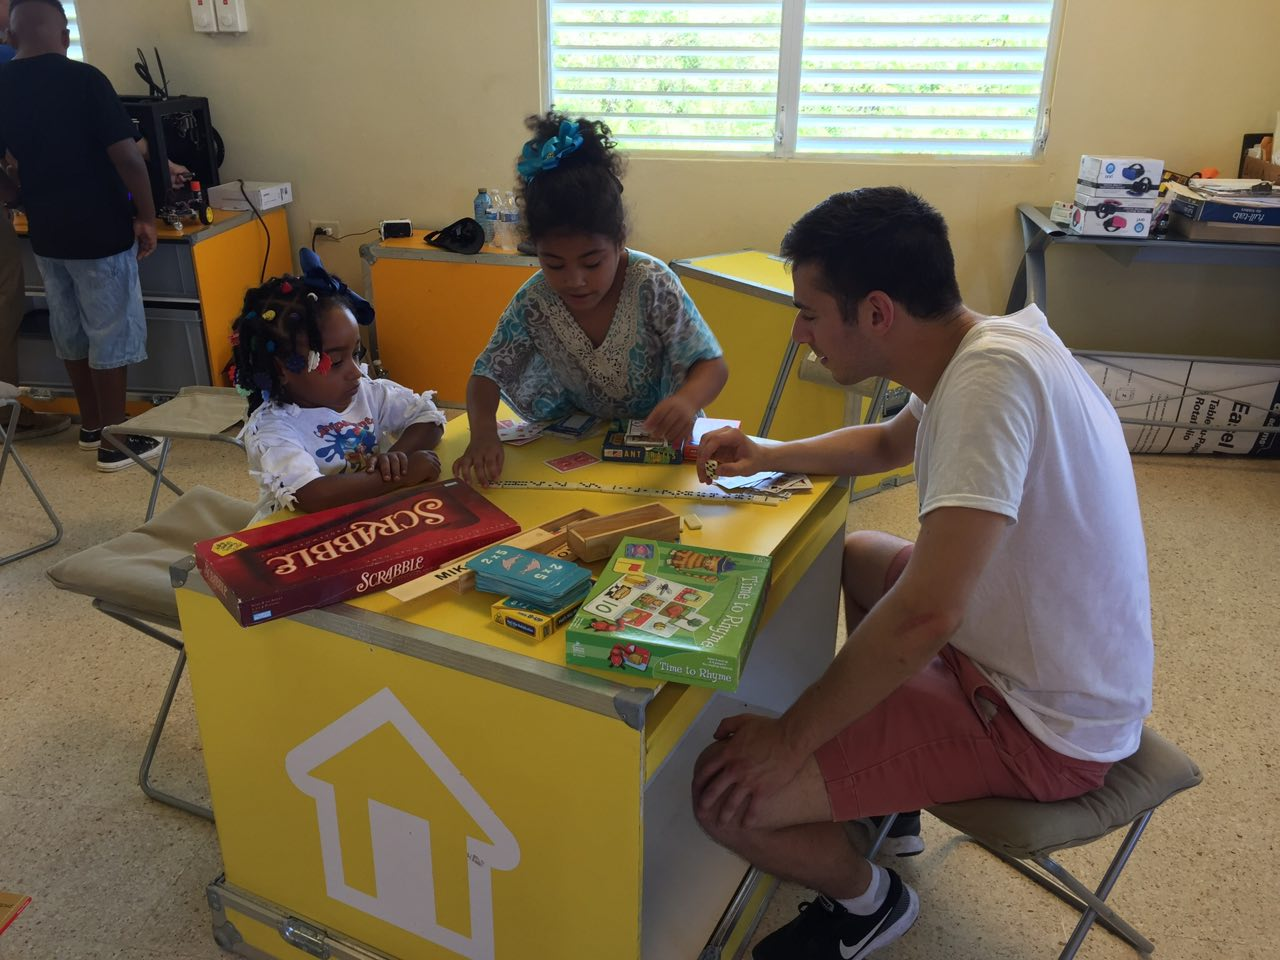 Executive Director, Adam Echelman, engaging with locals through the IdeasBox program in Loiza, Puerto Rico.